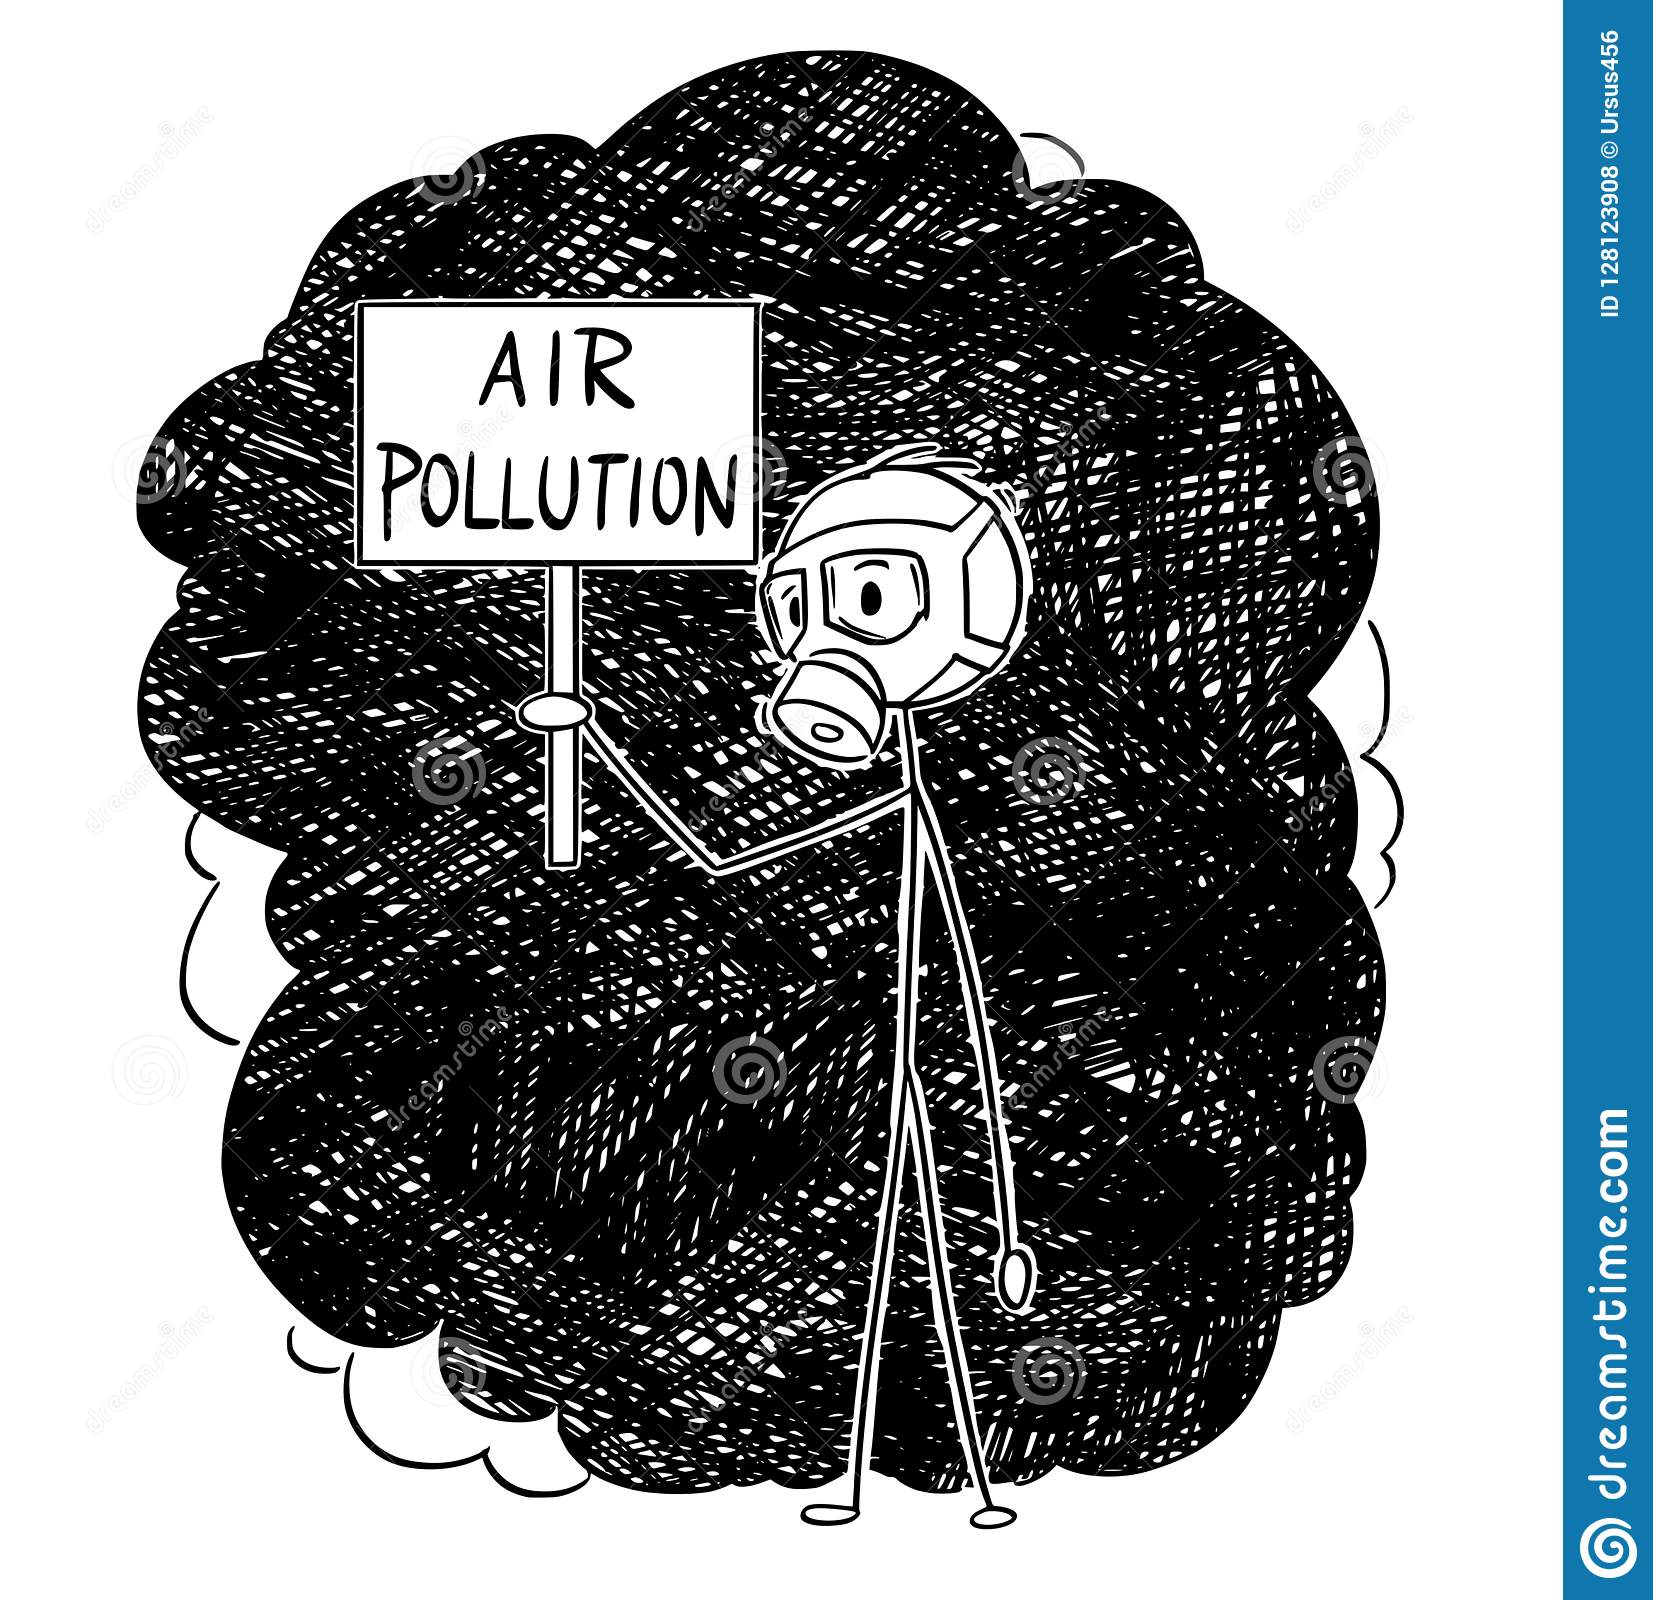 Cartoon stick drawing conceptual illustration of man with or wearing a gas mask and standing in smog and holding air pollution sign